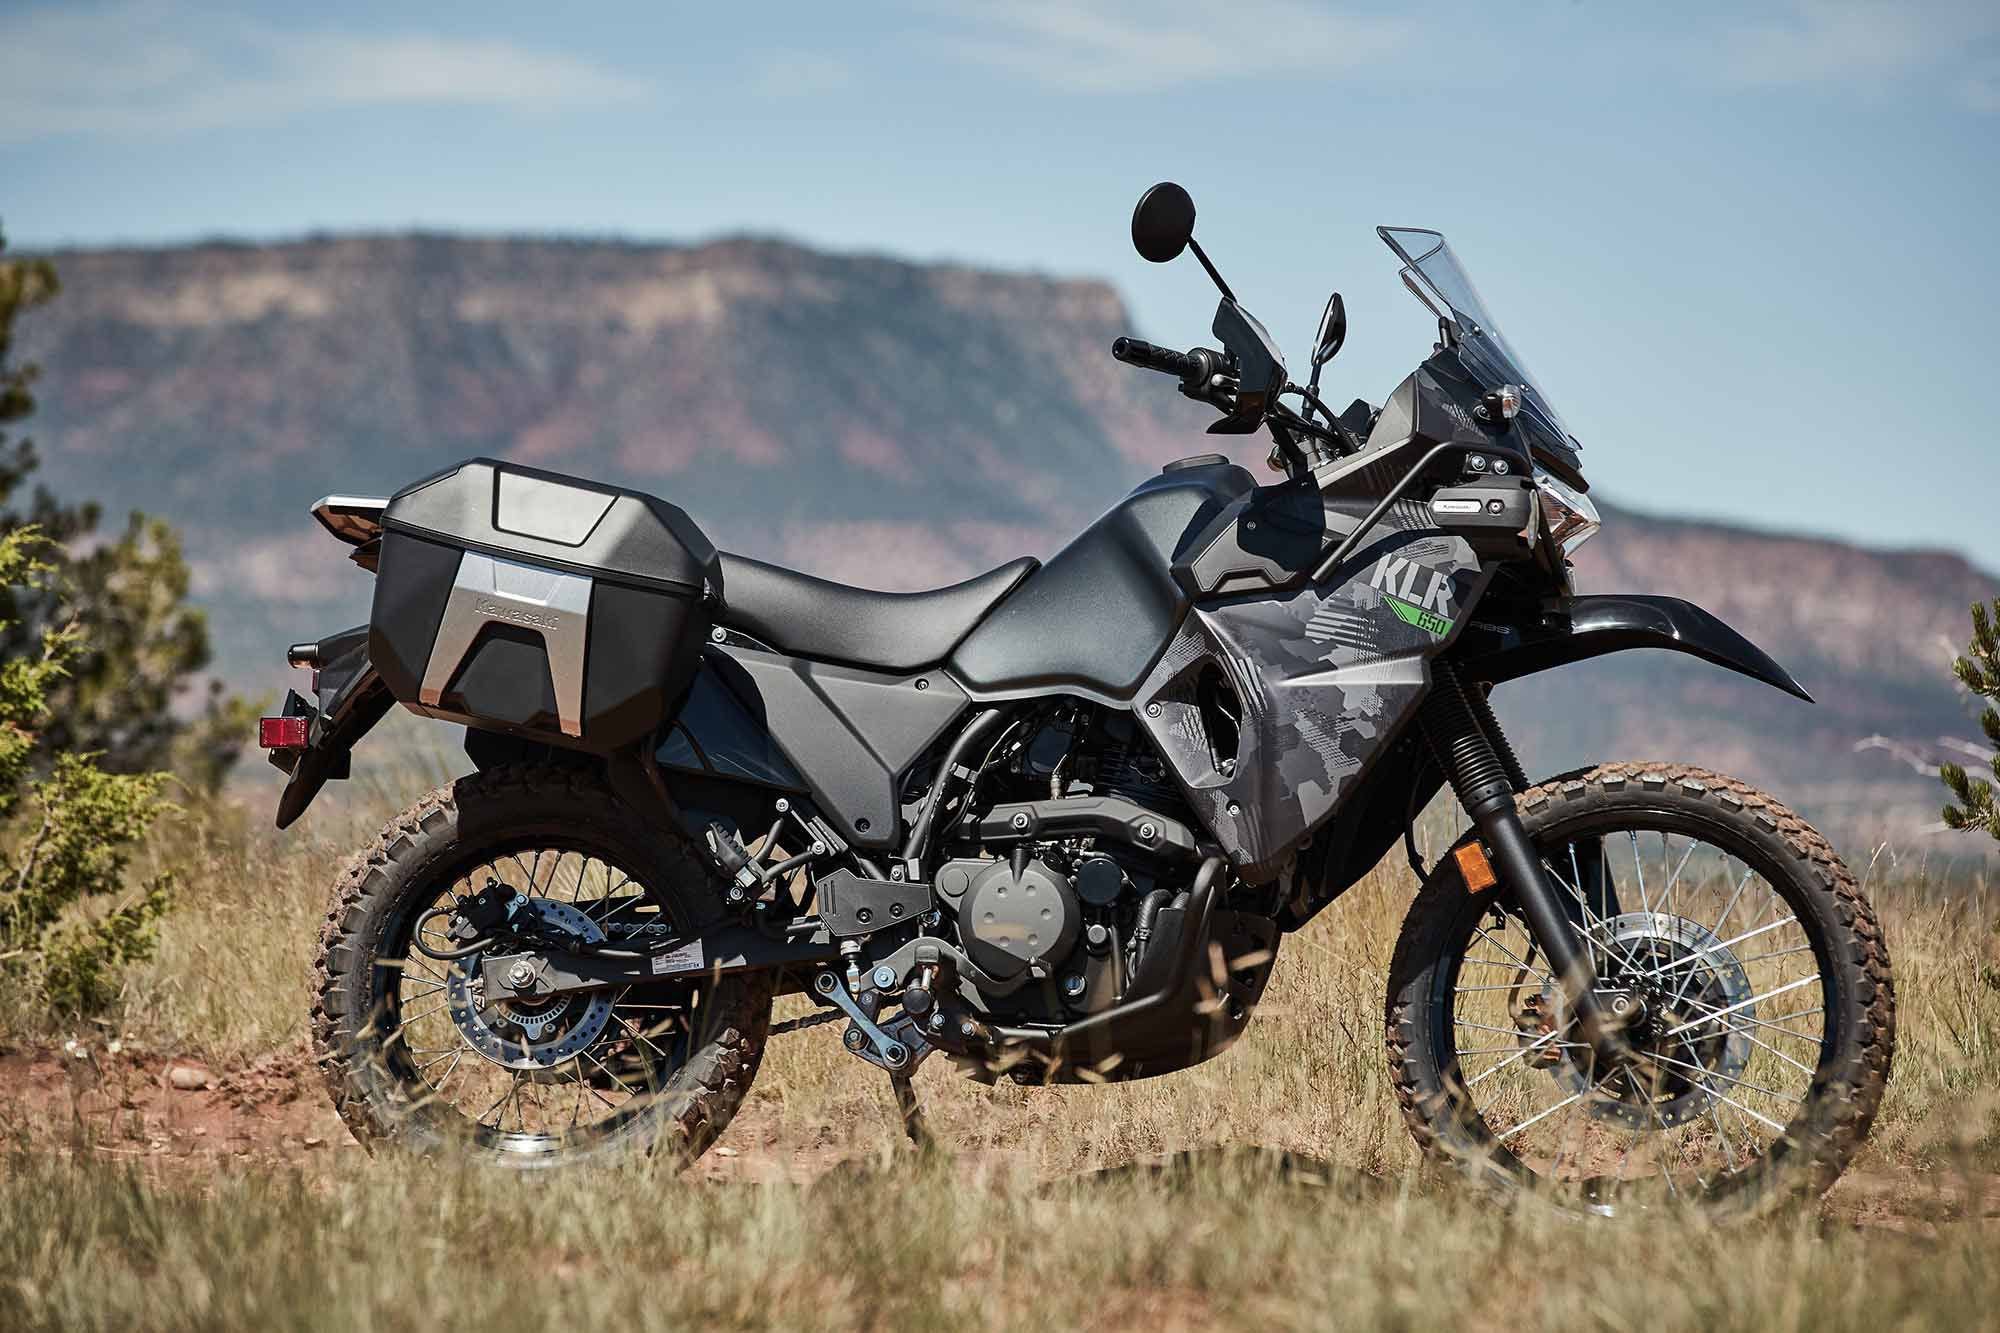 Our 2022 KLR650 test unit is the Adventure model without ABS.